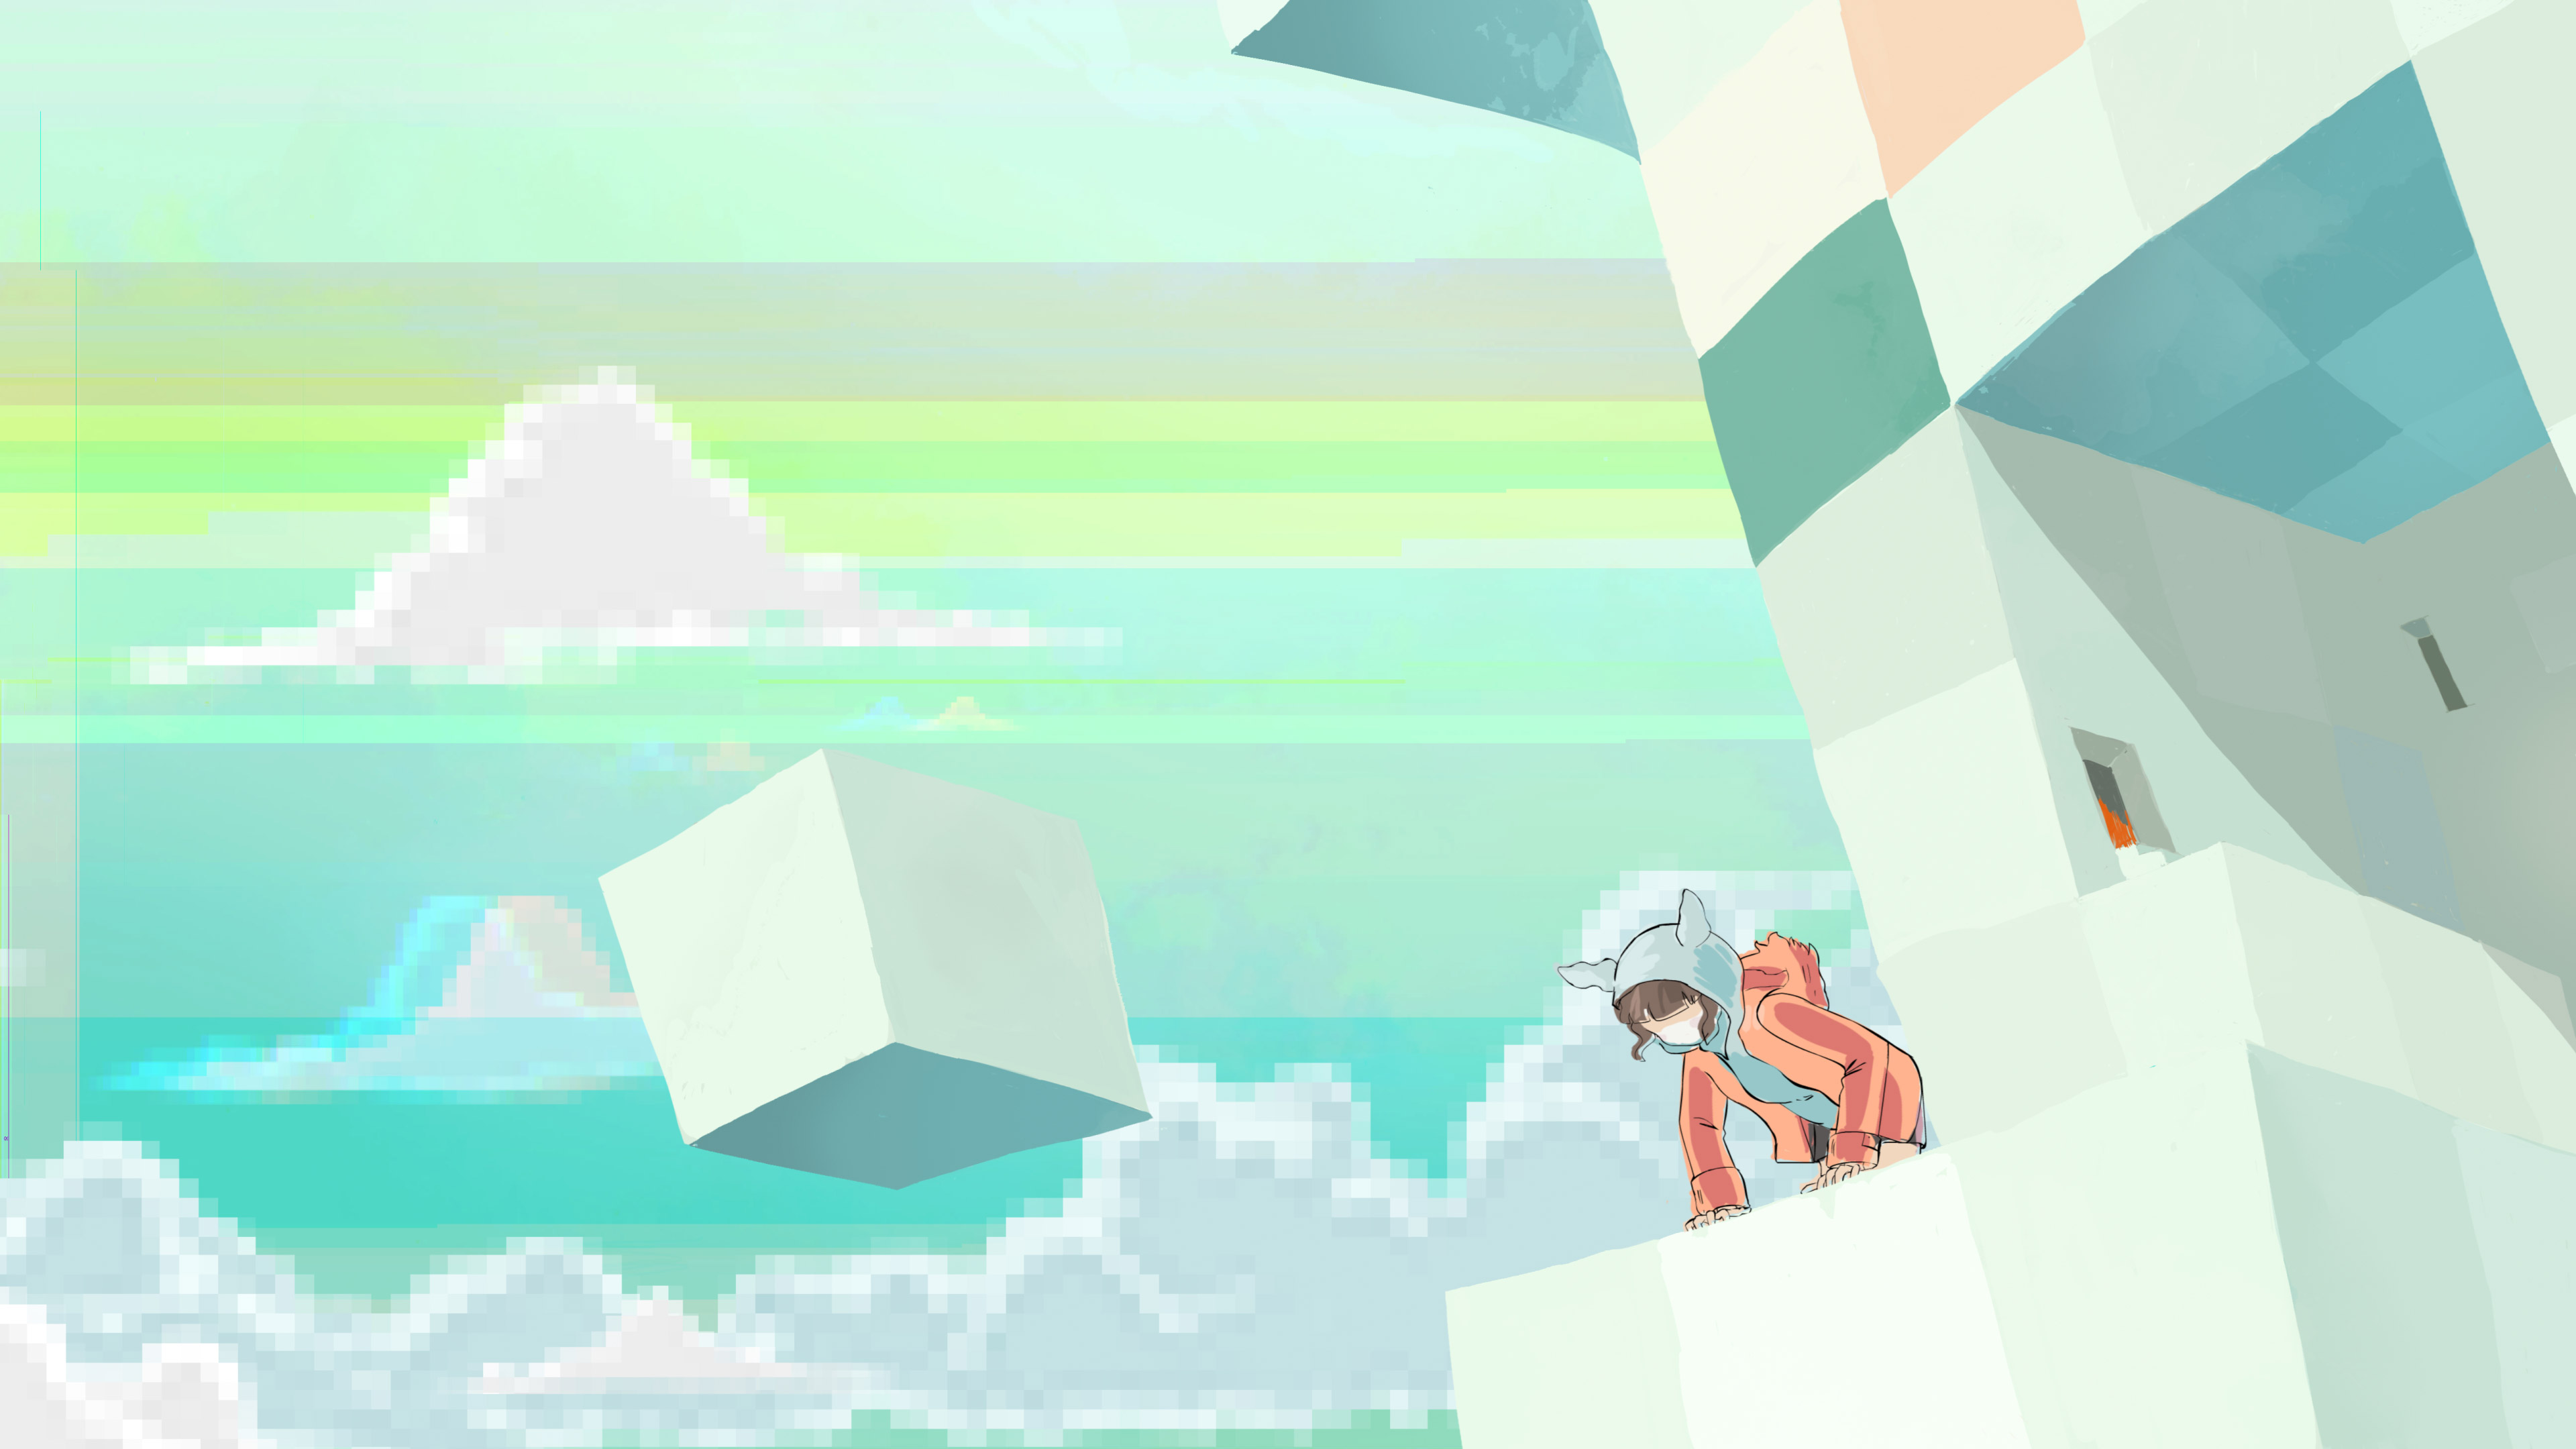 HQFX Wallpapers Porter Robinson for Desktop 29 3840x2160